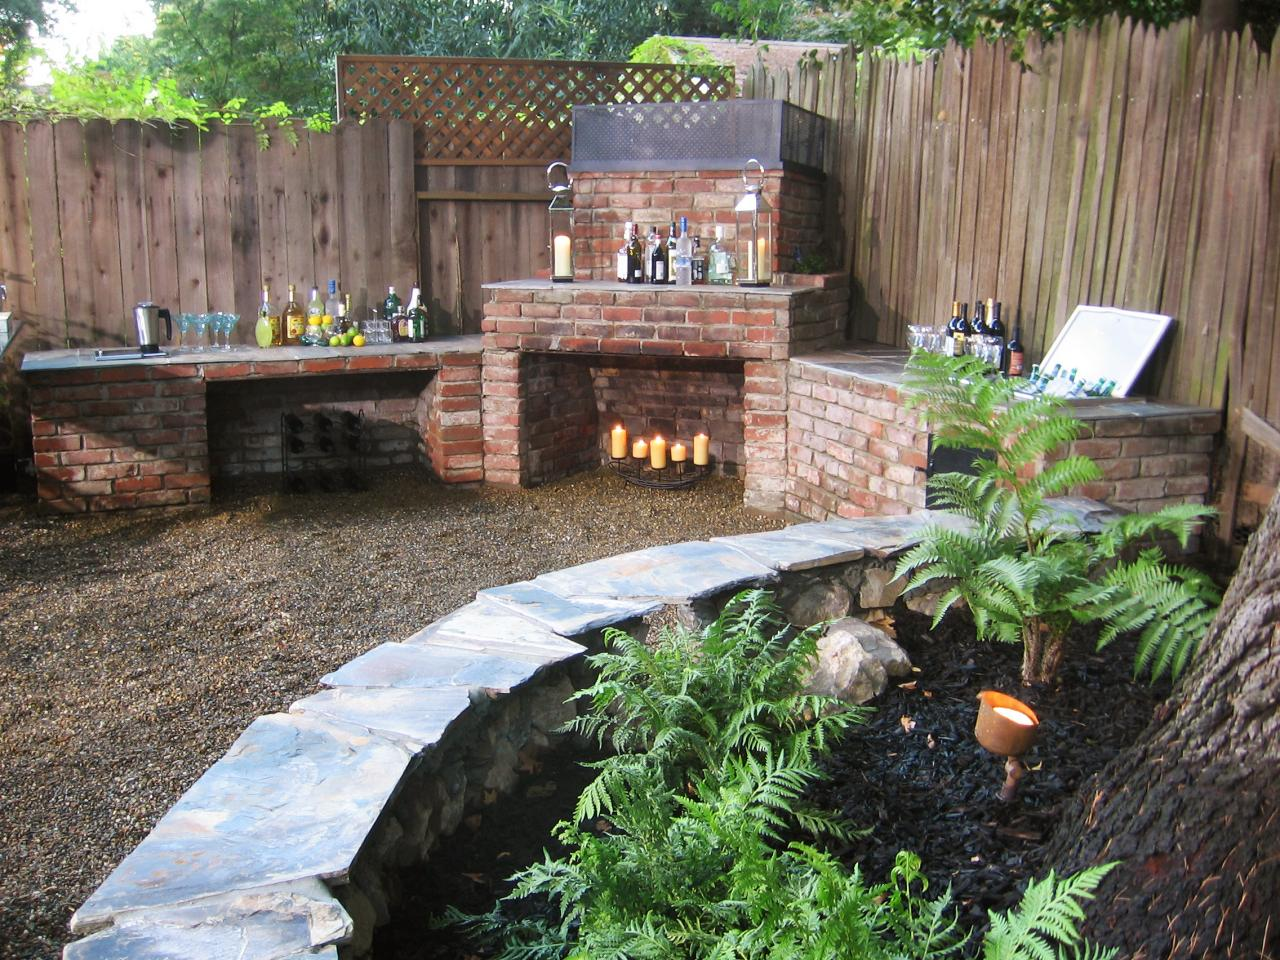 66 Fire Pit and Outdoor Fireplace Ideas | DIY Network Blog ... on Outdoor Kitchen And Fireplace Ideas id=96063